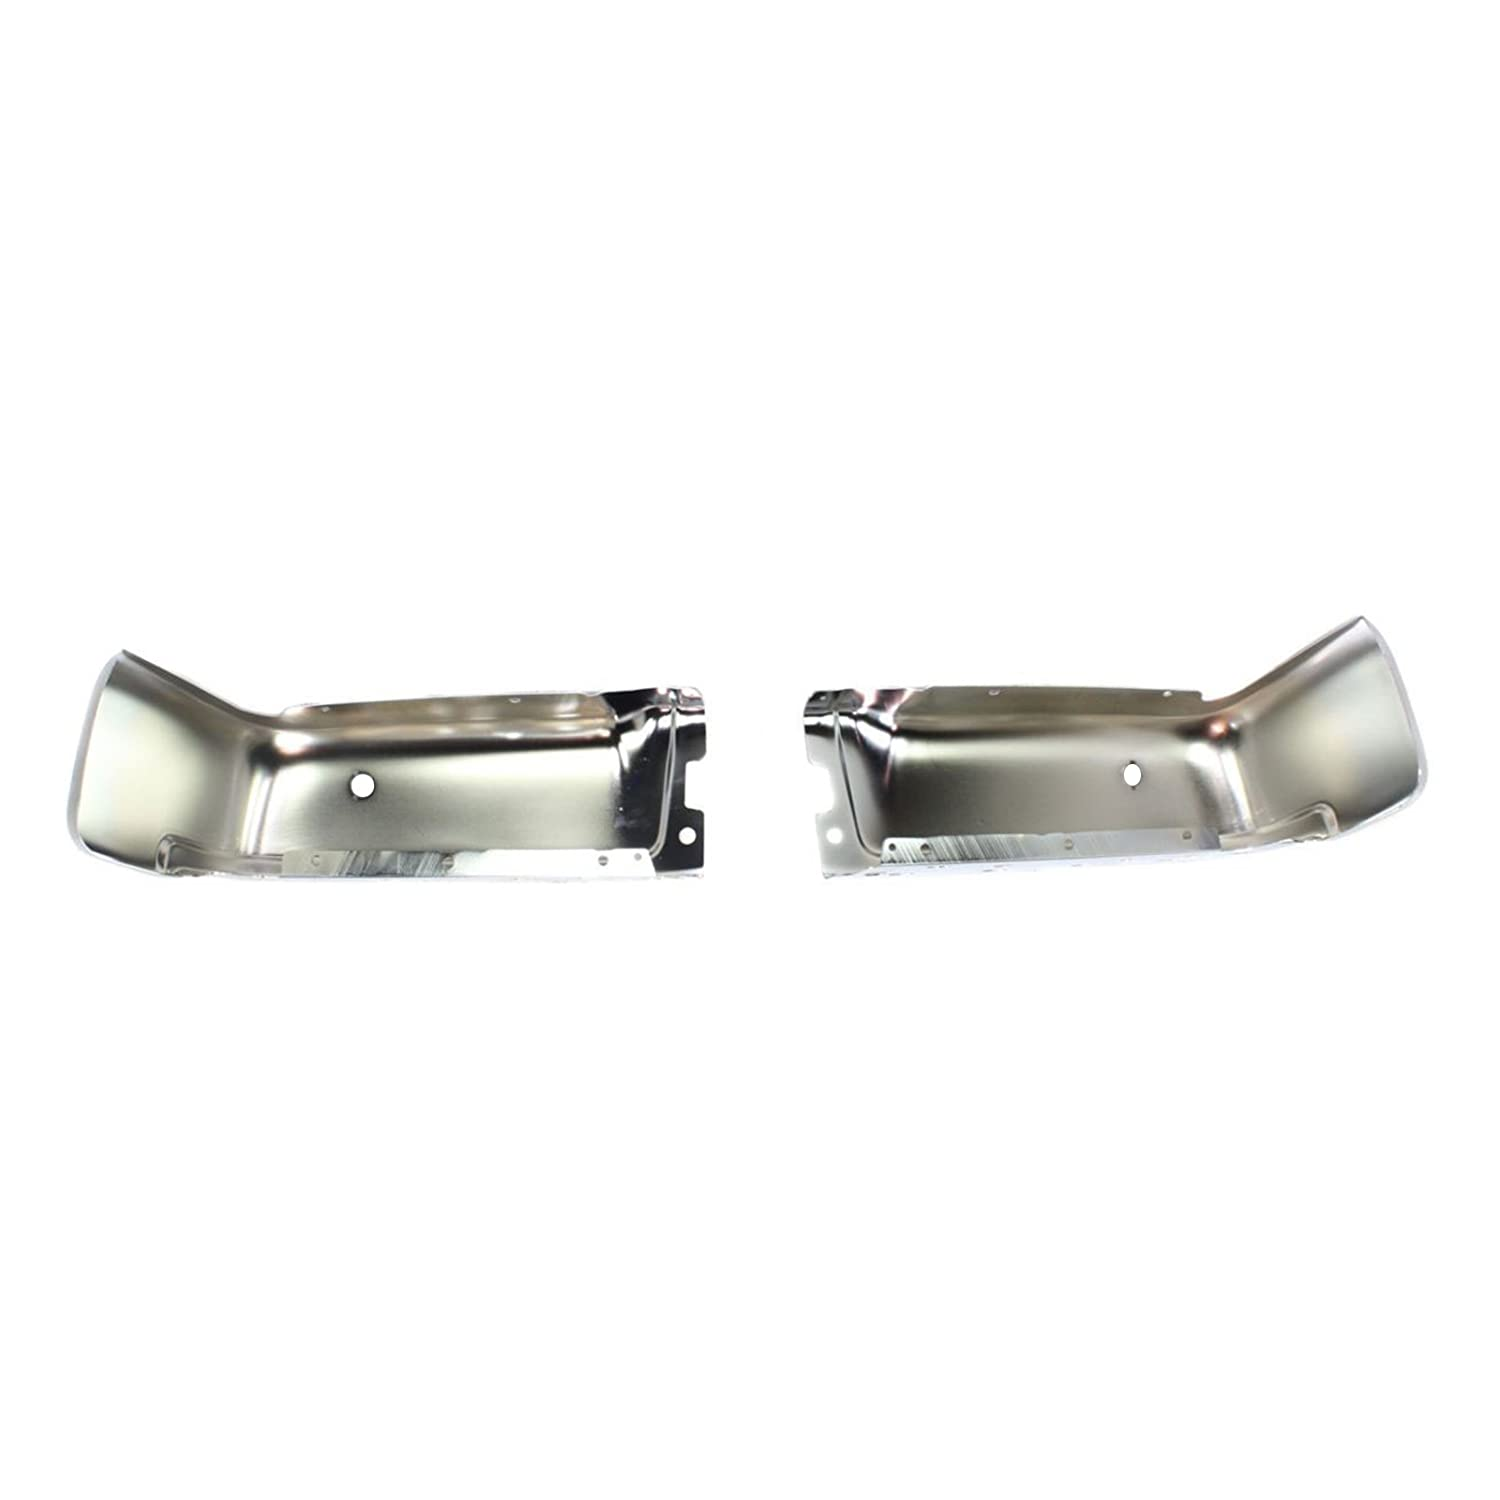 FO1102372 Chrome BUMPERS THAT DELIVER Steel Pair of Left /& Right Rear Bumper End Caps for 2009-2014 Ford F-150 Pickup w//Park Assist 09-14